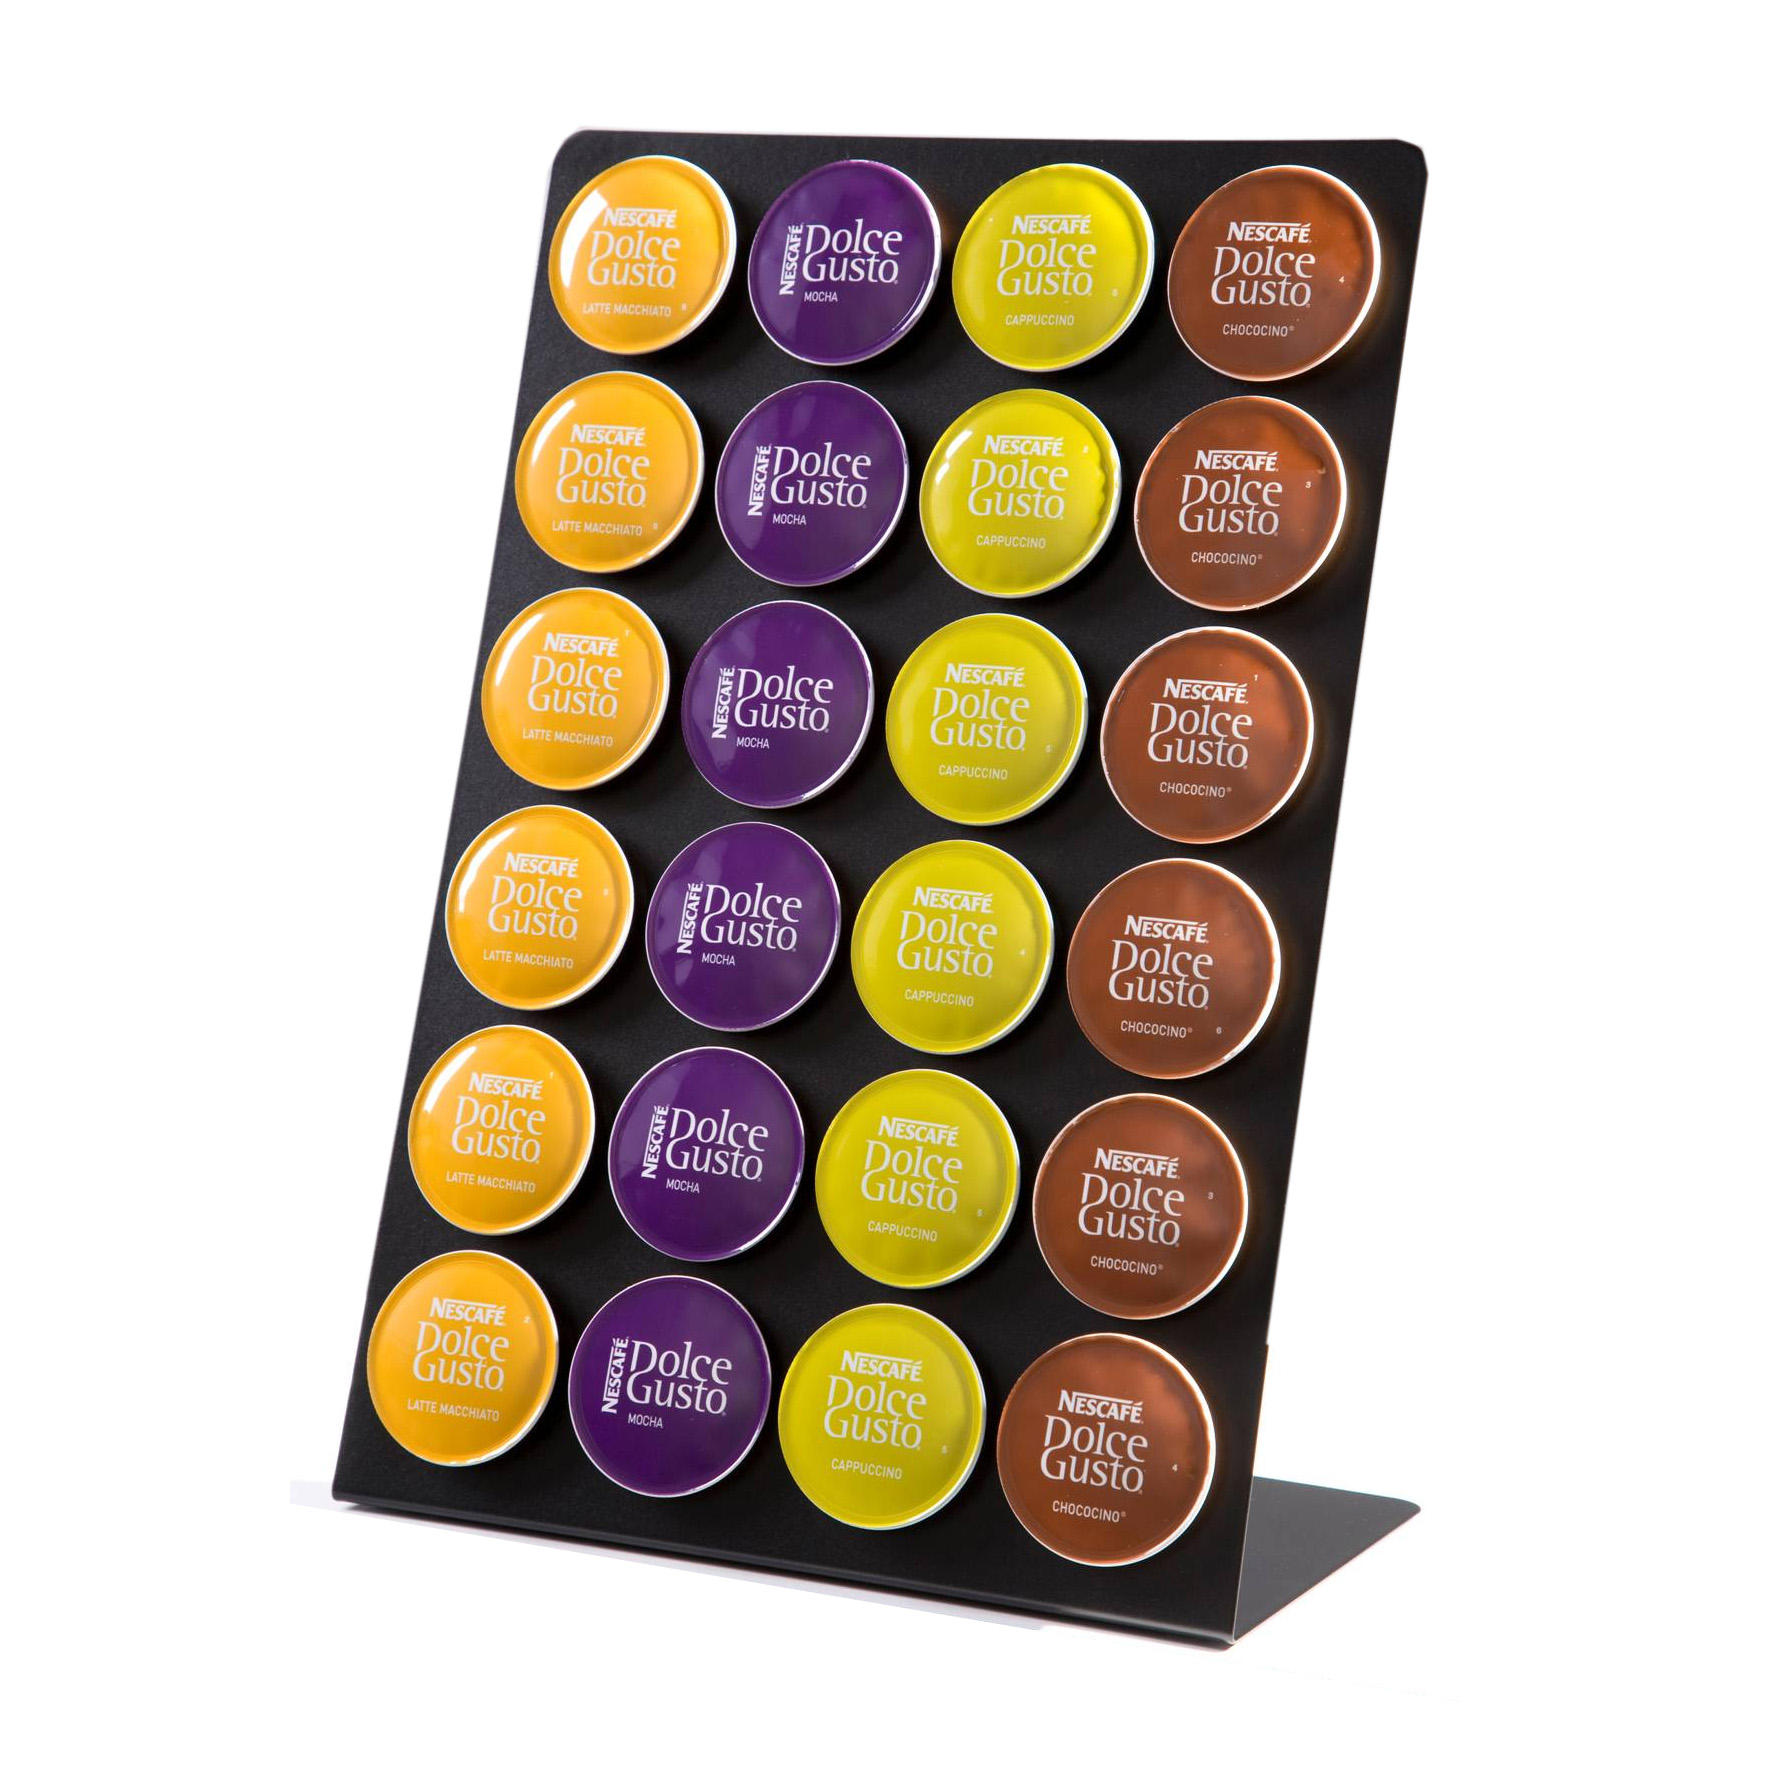 coffeeboard capsule holder for dolce gusto capsules. Black Bedroom Furniture Sets. Home Design Ideas